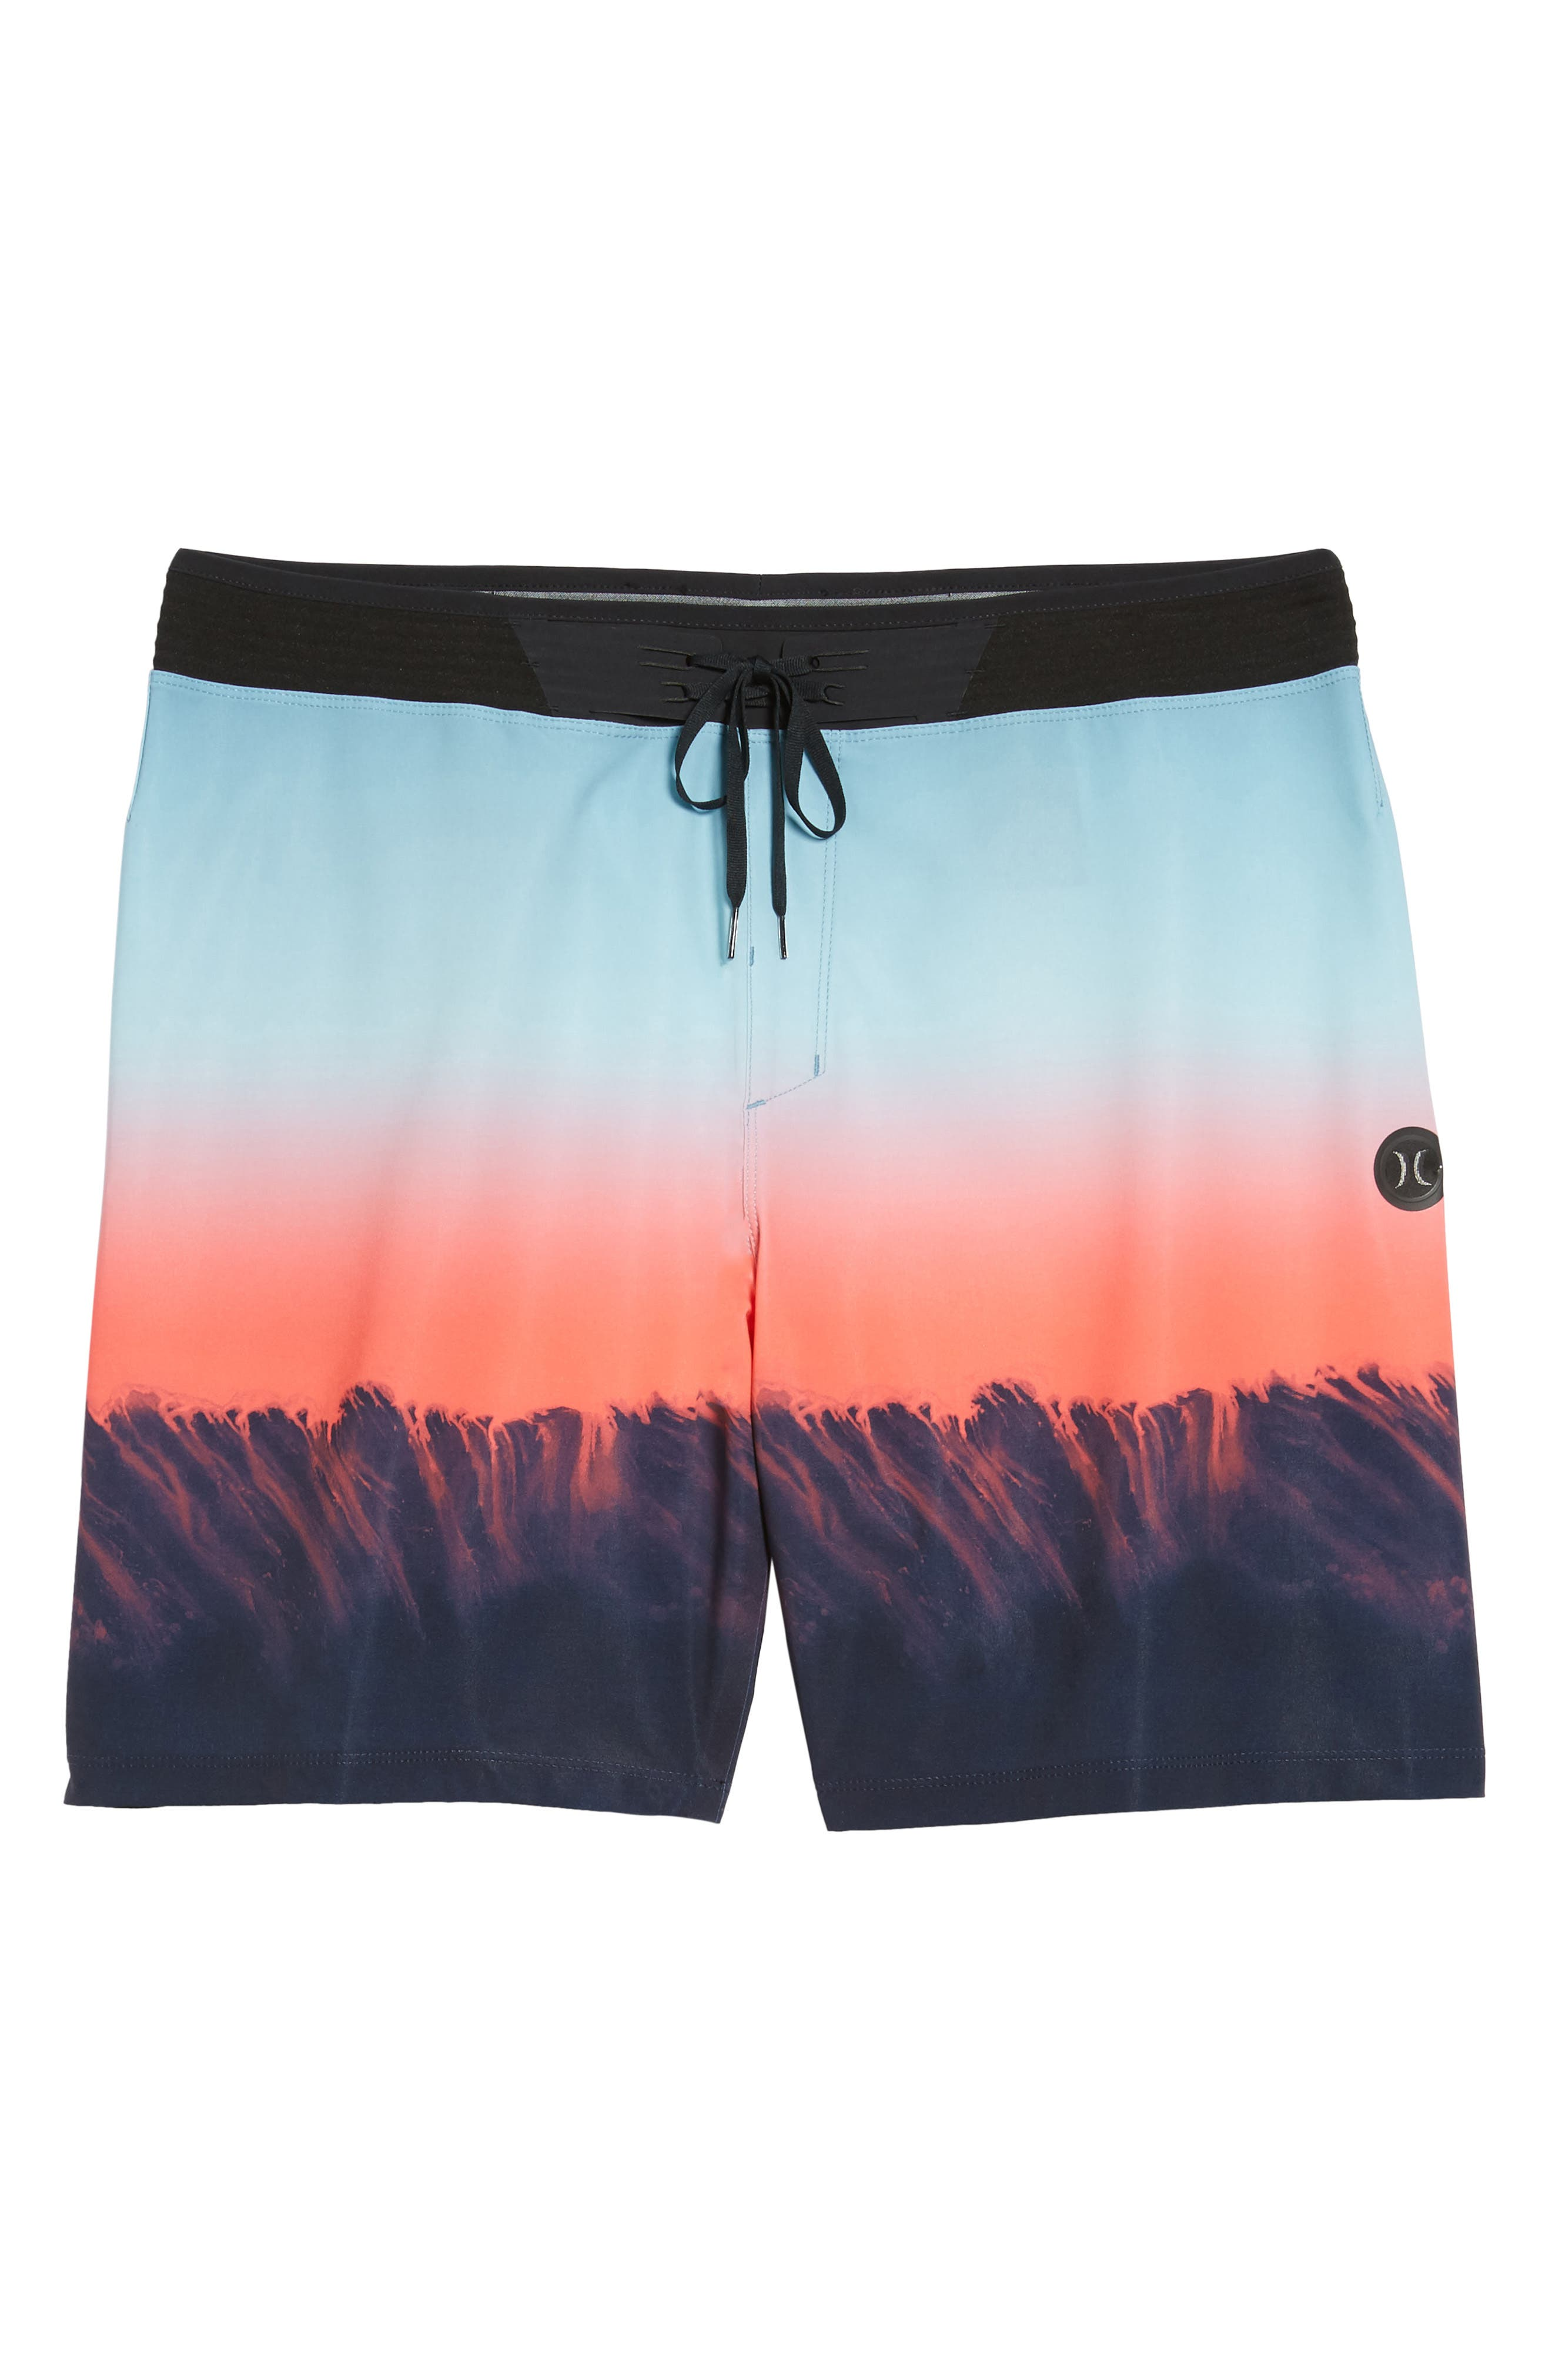 Phantom Hyperweave 3.0 Estuary Board Shorts,                             Alternate thumbnail 6, color,                             OBSIDIAN